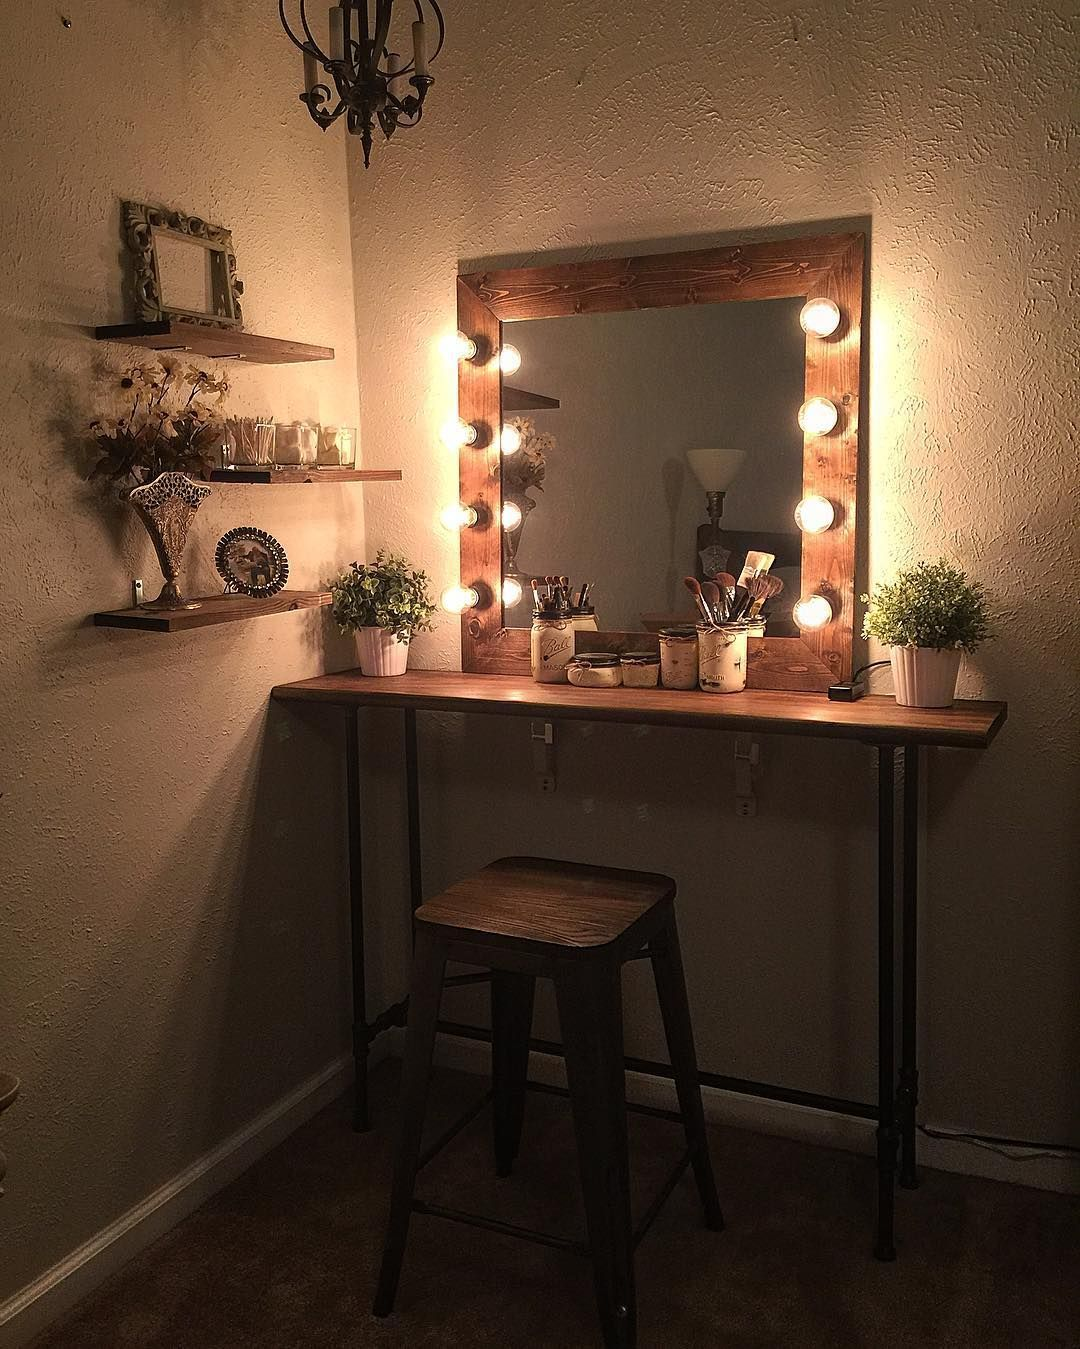 Makeup Vanity Ideas Offer The Perfect Combination Of Dedicated Space Storage And Style To Make Applying Makeup A Joy Ins Rustic Vanity Home Decor Diy Vanity